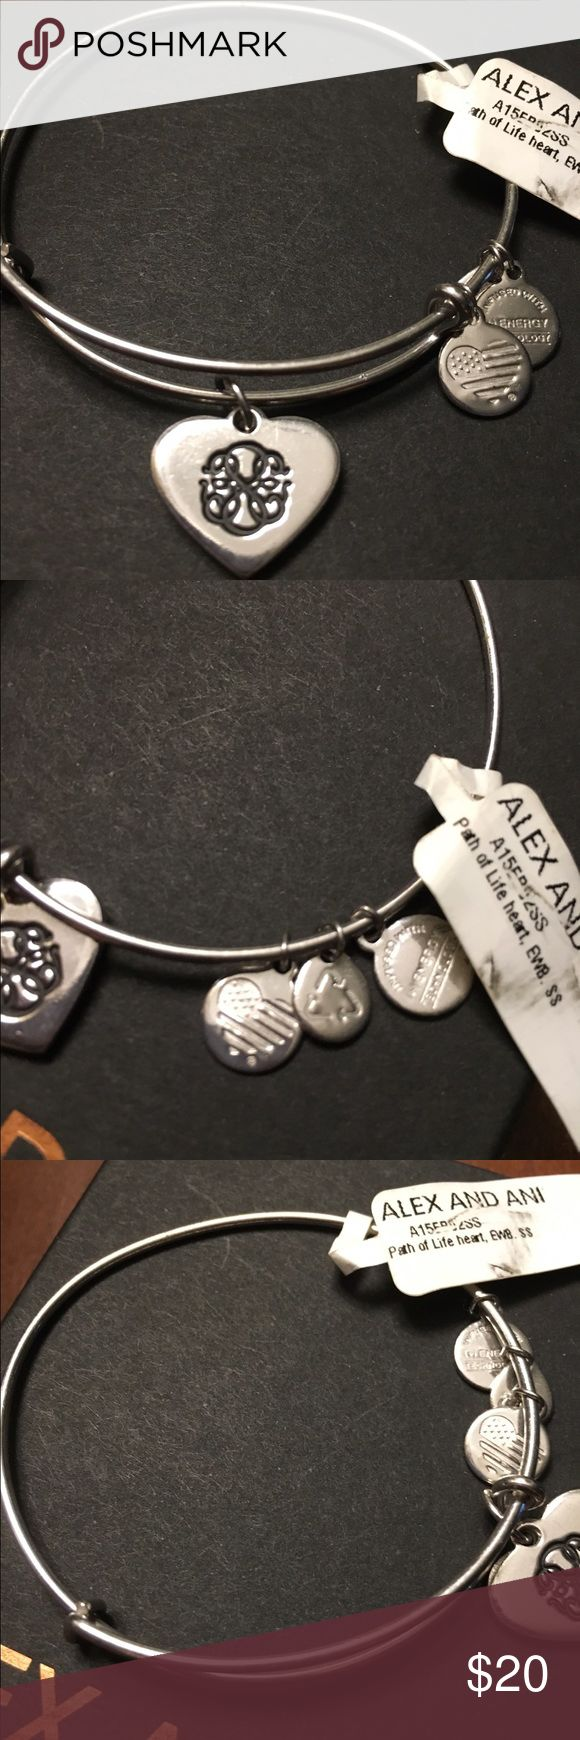 Alex and Ani silver Path of Life heart BNWT Never worn, stored in a dust bag. Perfect condition Alex & Ani Jewelry Bracelets